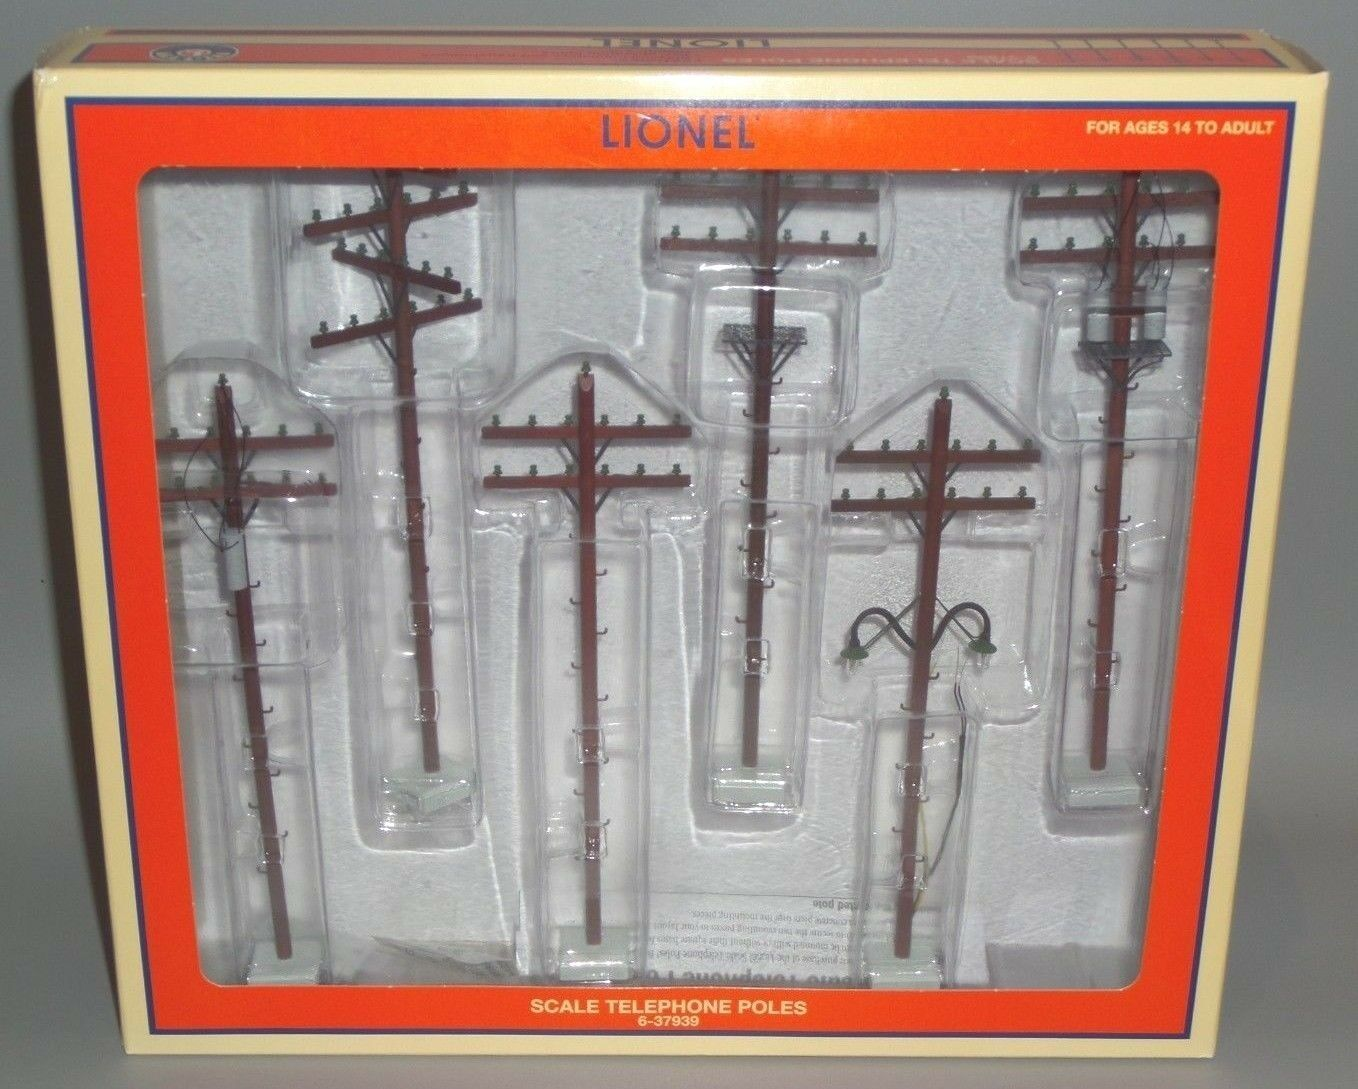 2011 LIONEL 6-37939 SCALE TELEPHONE POLES (6) ONE WITH OPERATING LIGHTS NIB